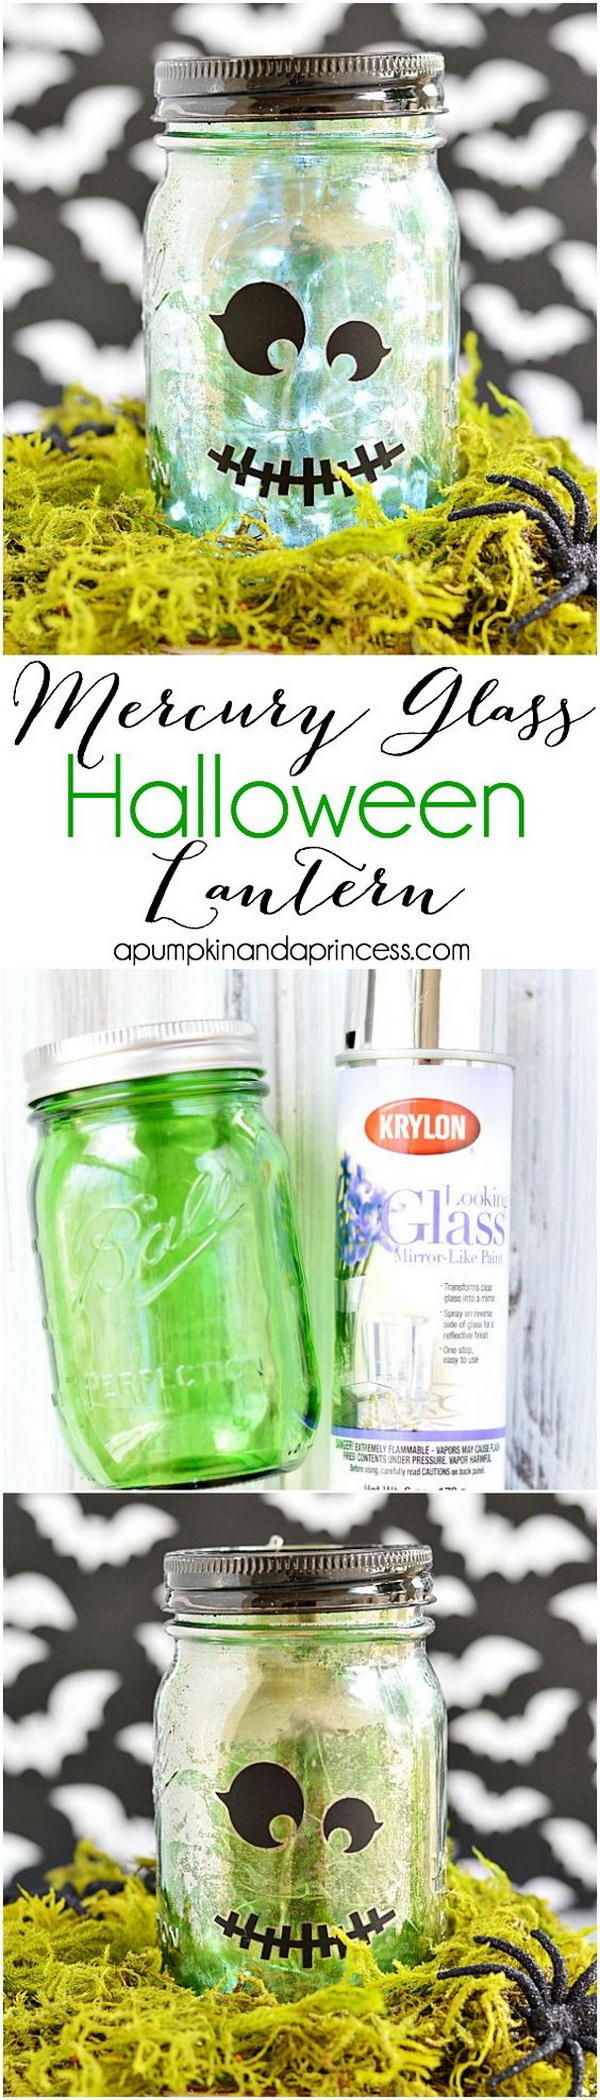 Mercury Glass Halloween Mason Jar.